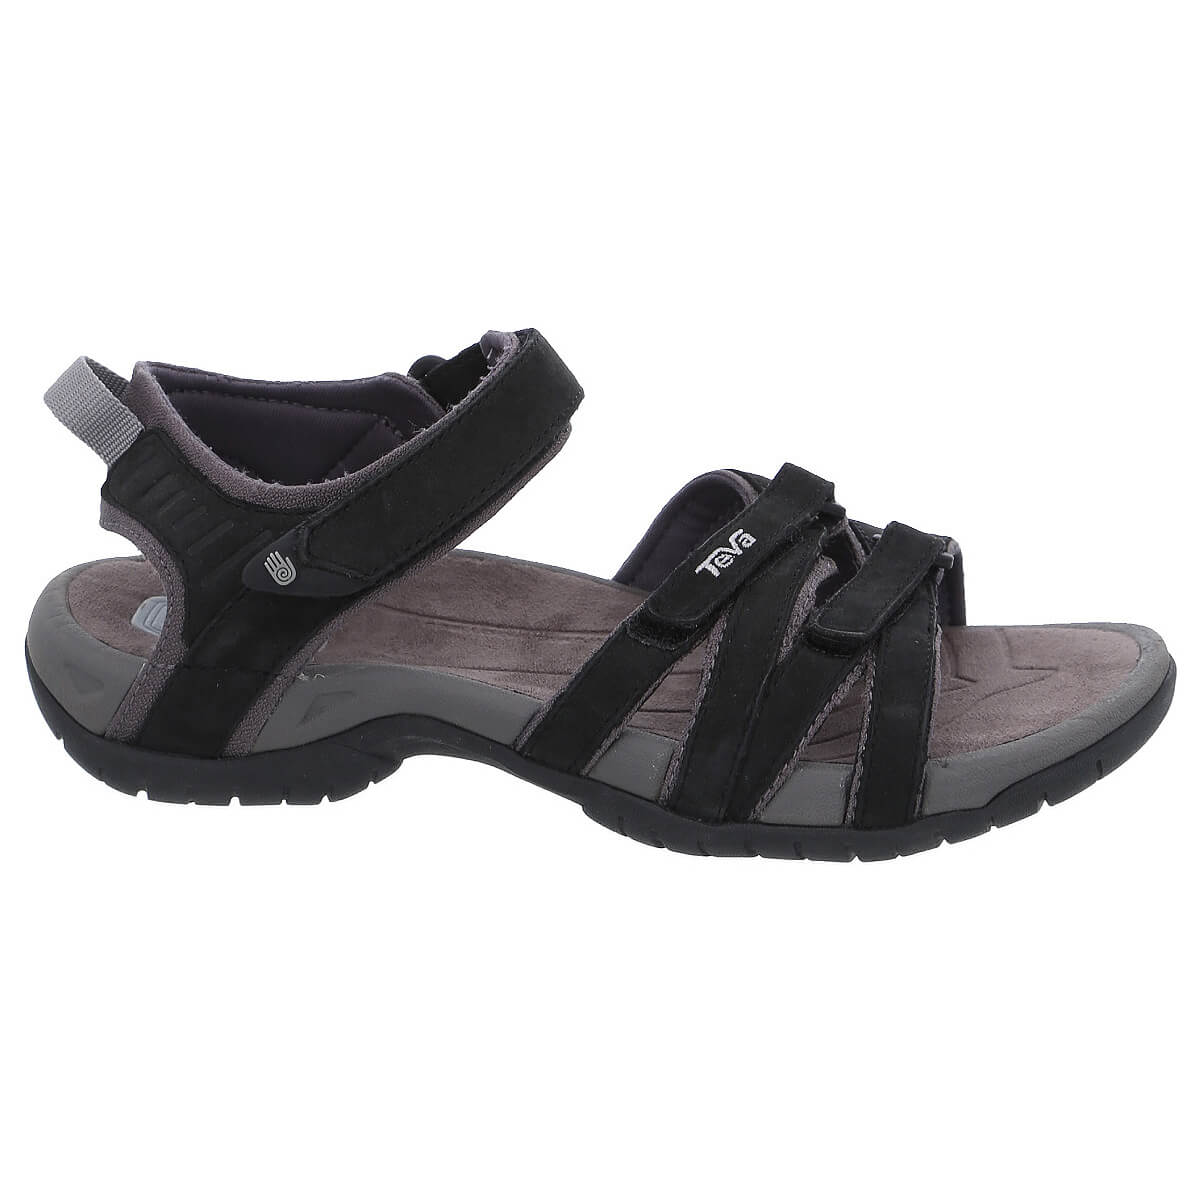 Rust6us Teva Leather Sandalen Women's Tirra SUzVpLMGq